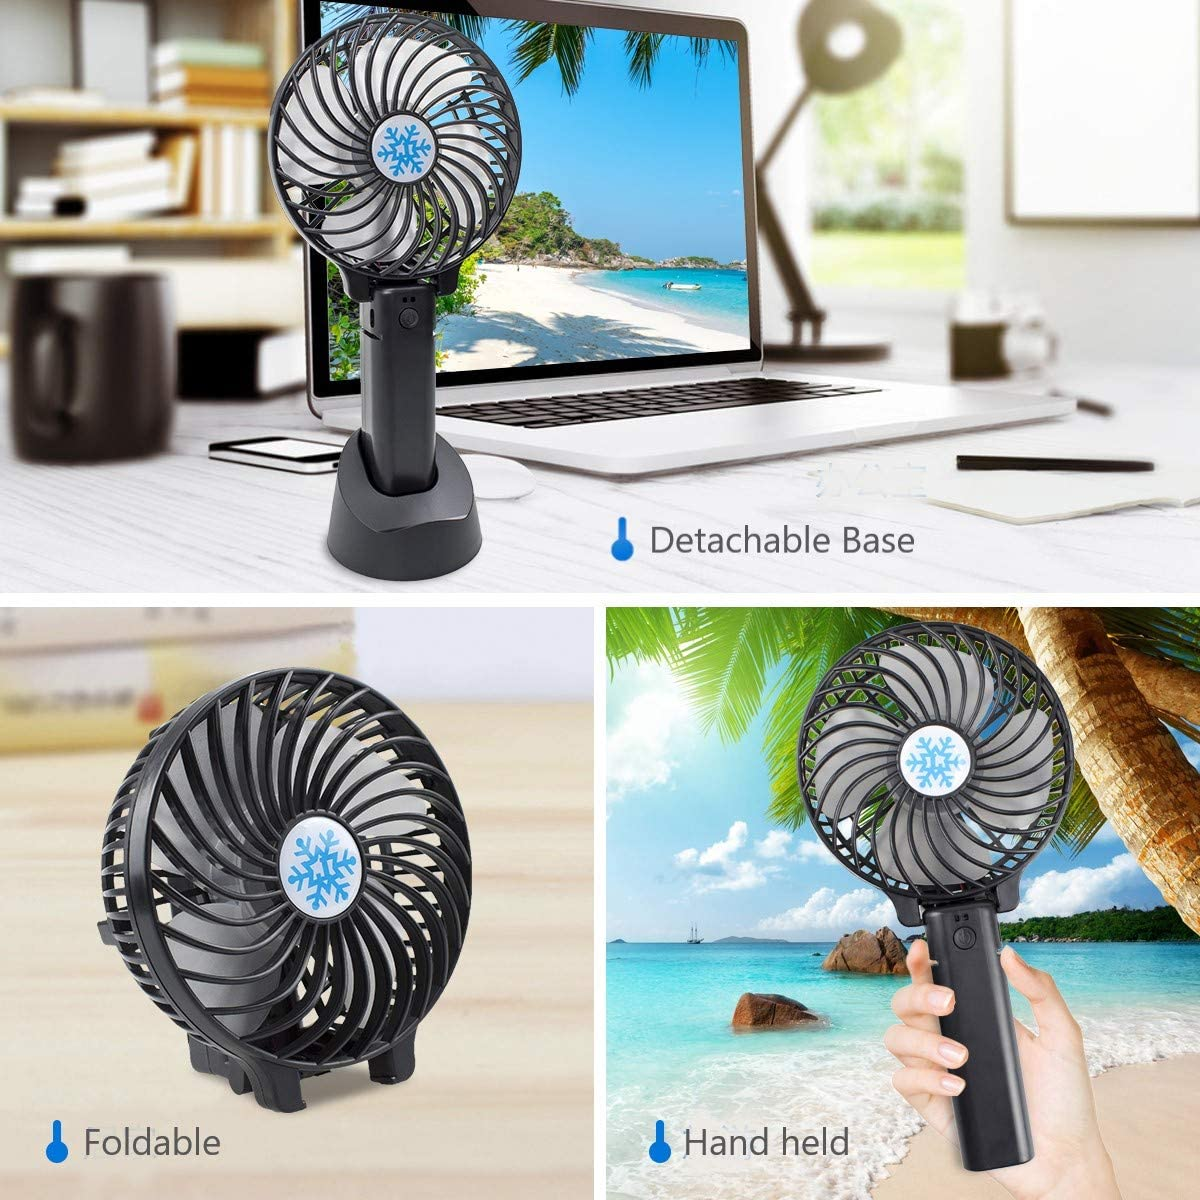 HUSAN Hand Held Fan, Portable Mini Foldable Cooling Desk Fan 3 Speeds USB Rechargeable Battery Operated Fan with Base for Home Office Travel (Black) Black